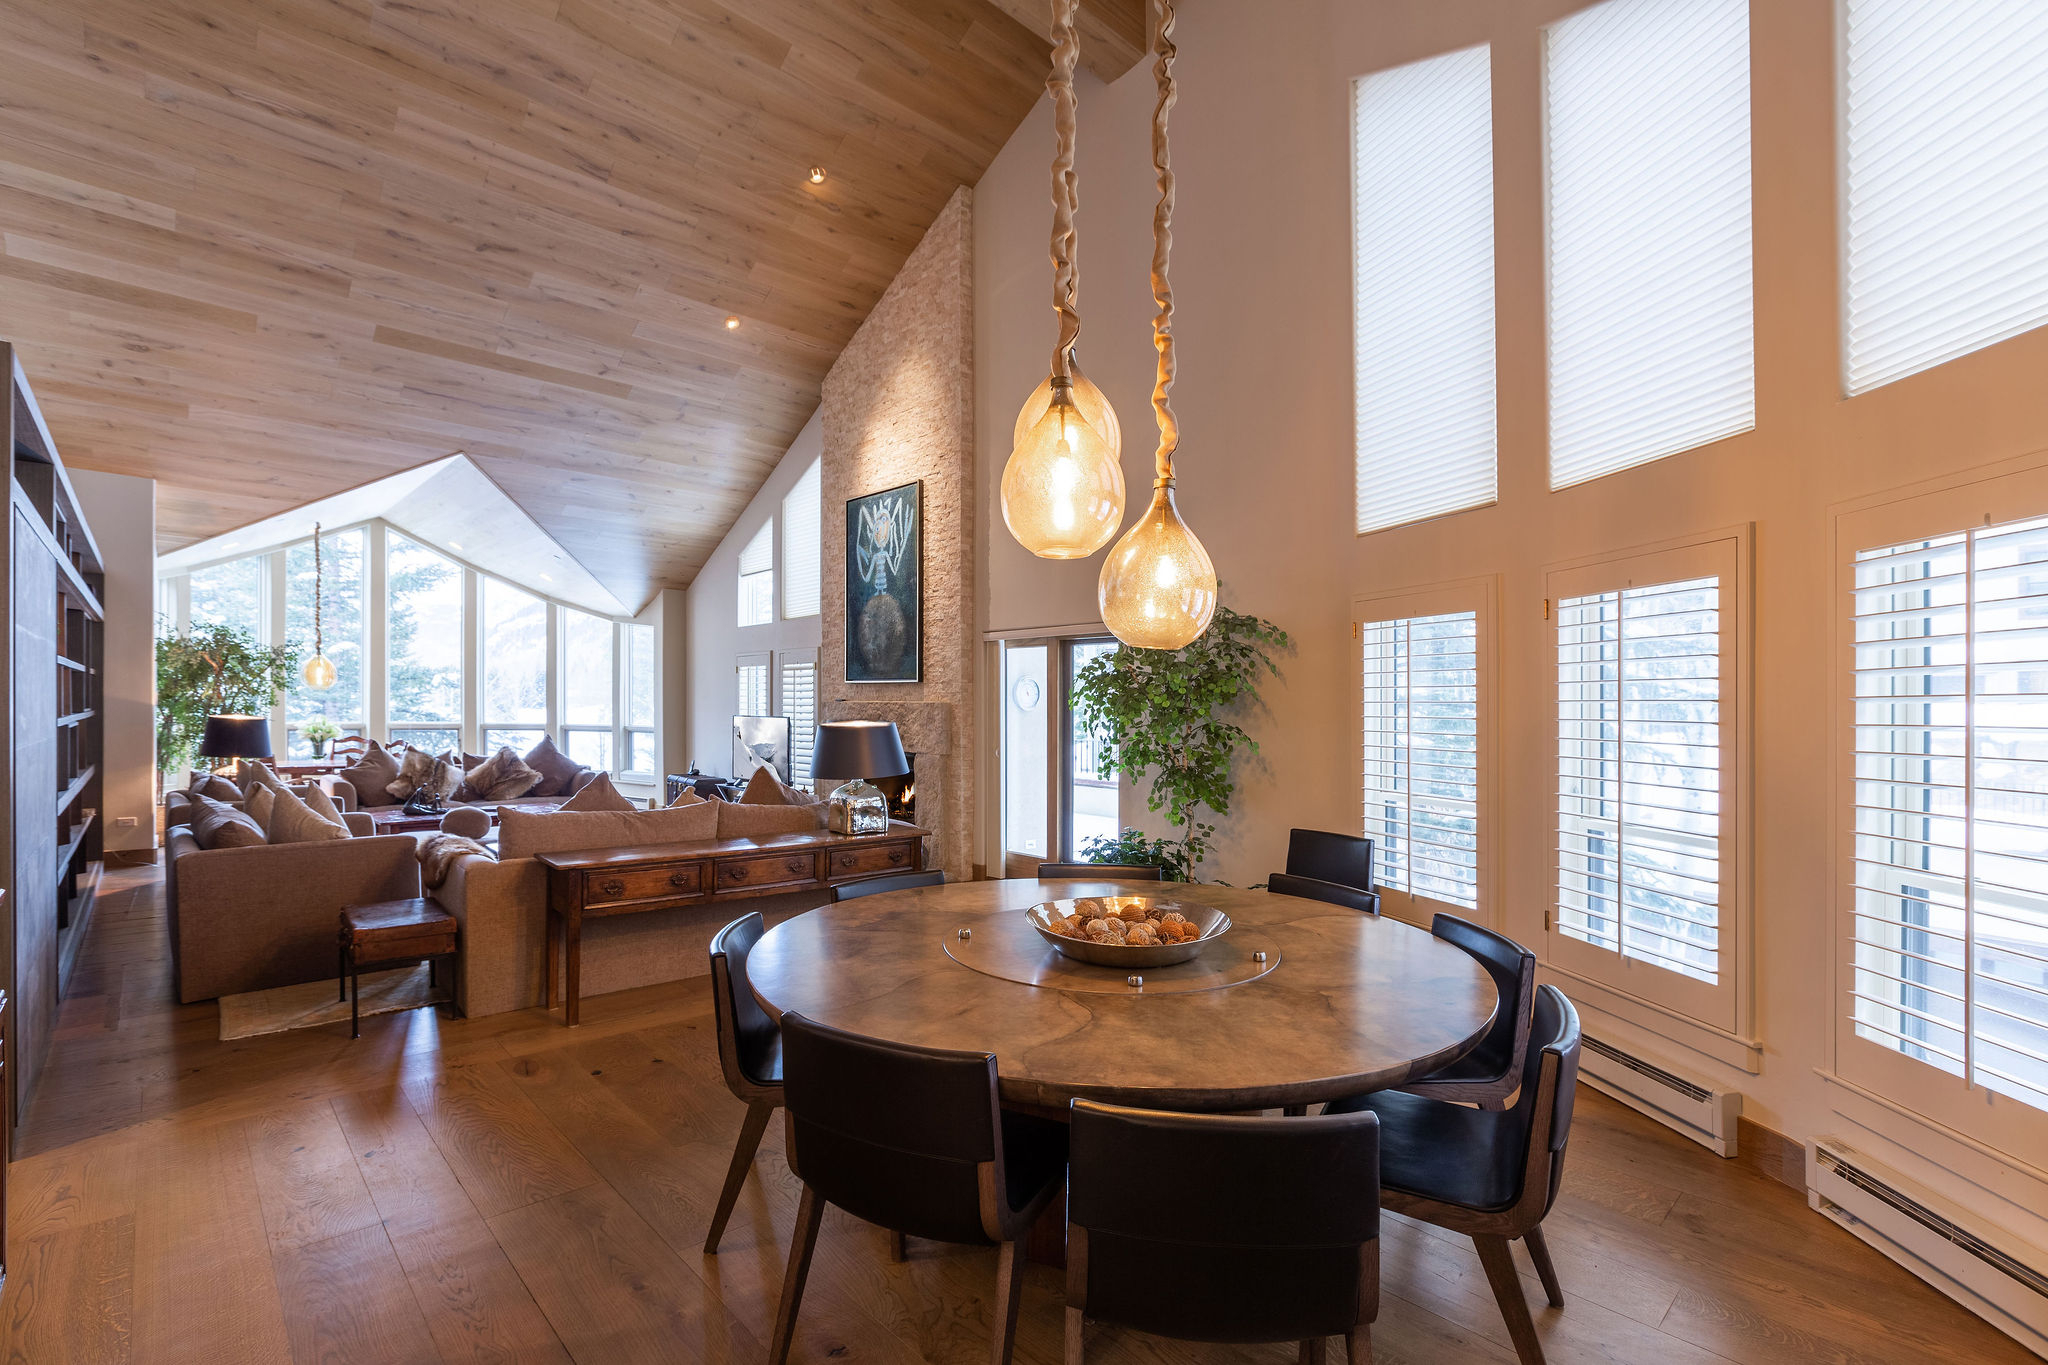 Vail Realty – Northwoods Spruce Bldg 313 5 Bed 4 Bath Vacation Intended For Most Current Northwoods 3 Piece Dining Sets (View 18 of 20)